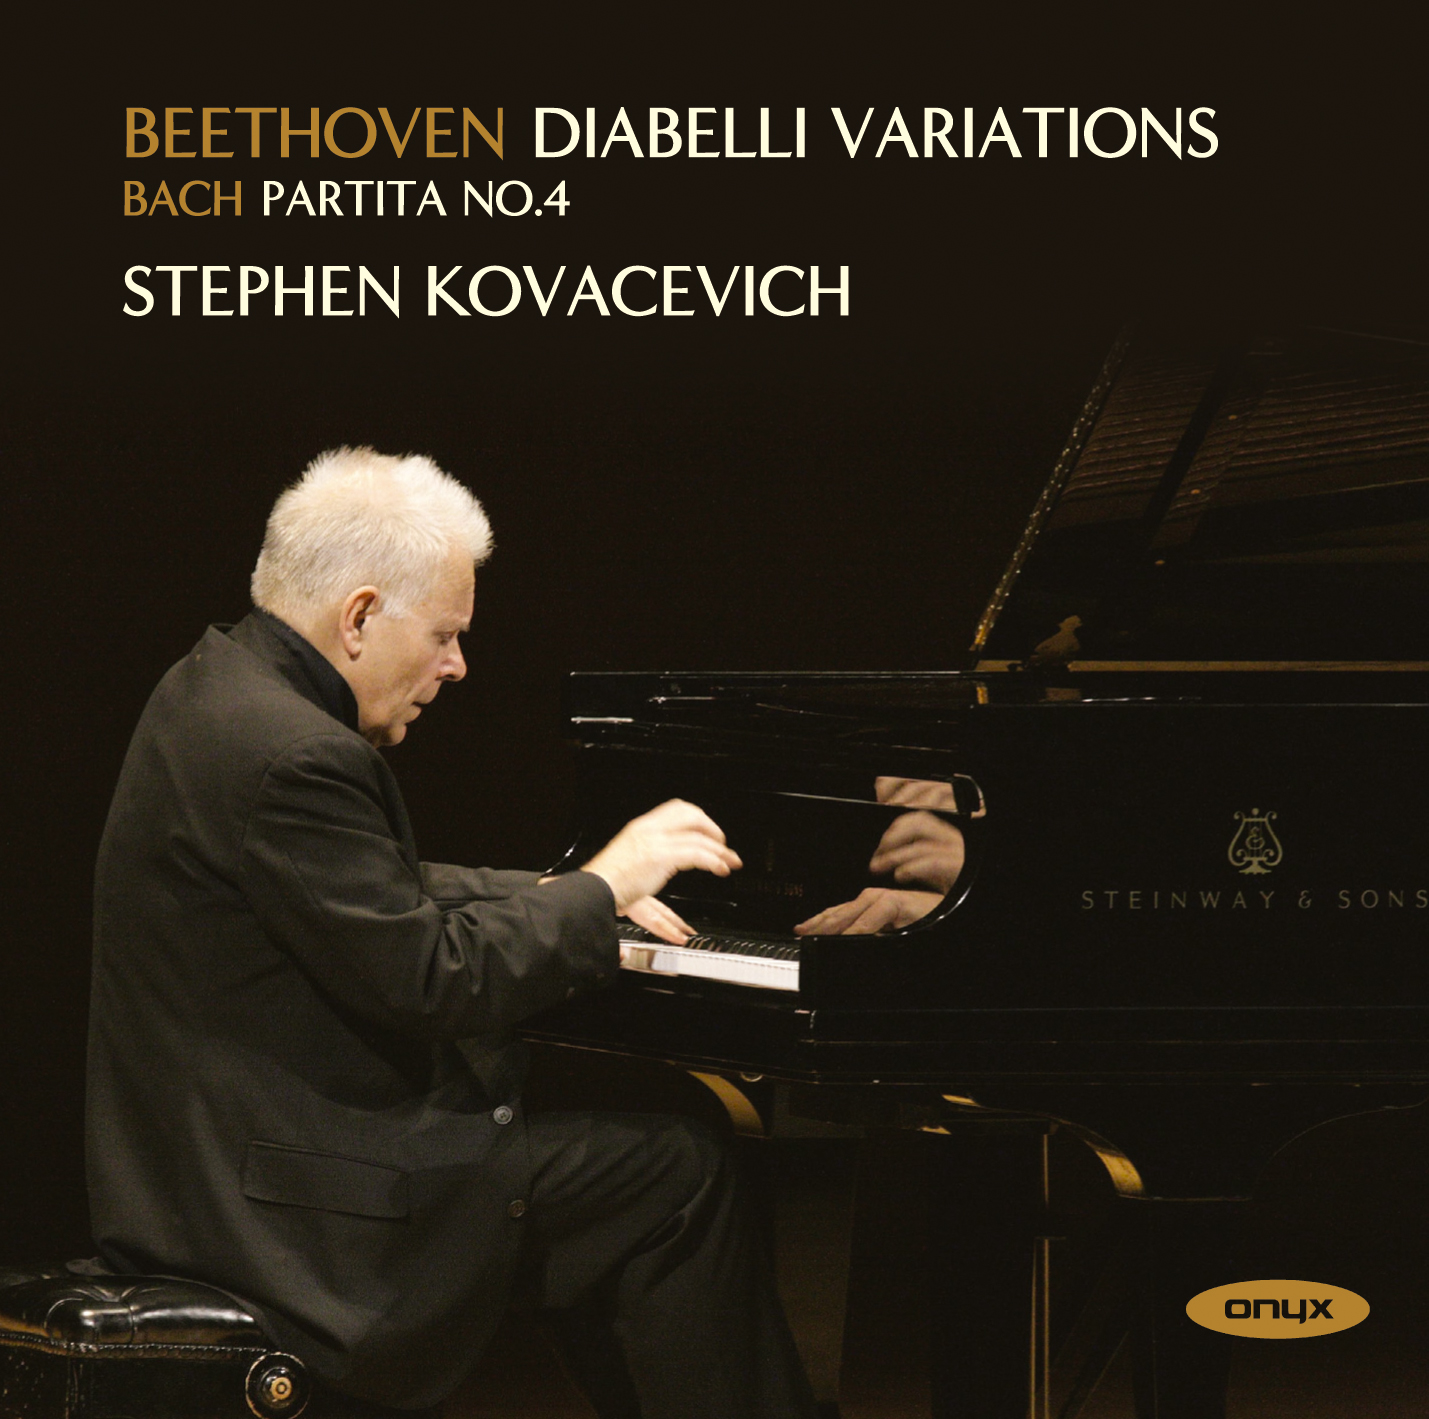 Beethoven: Diabelli Variations / Bach: Partita No. 4